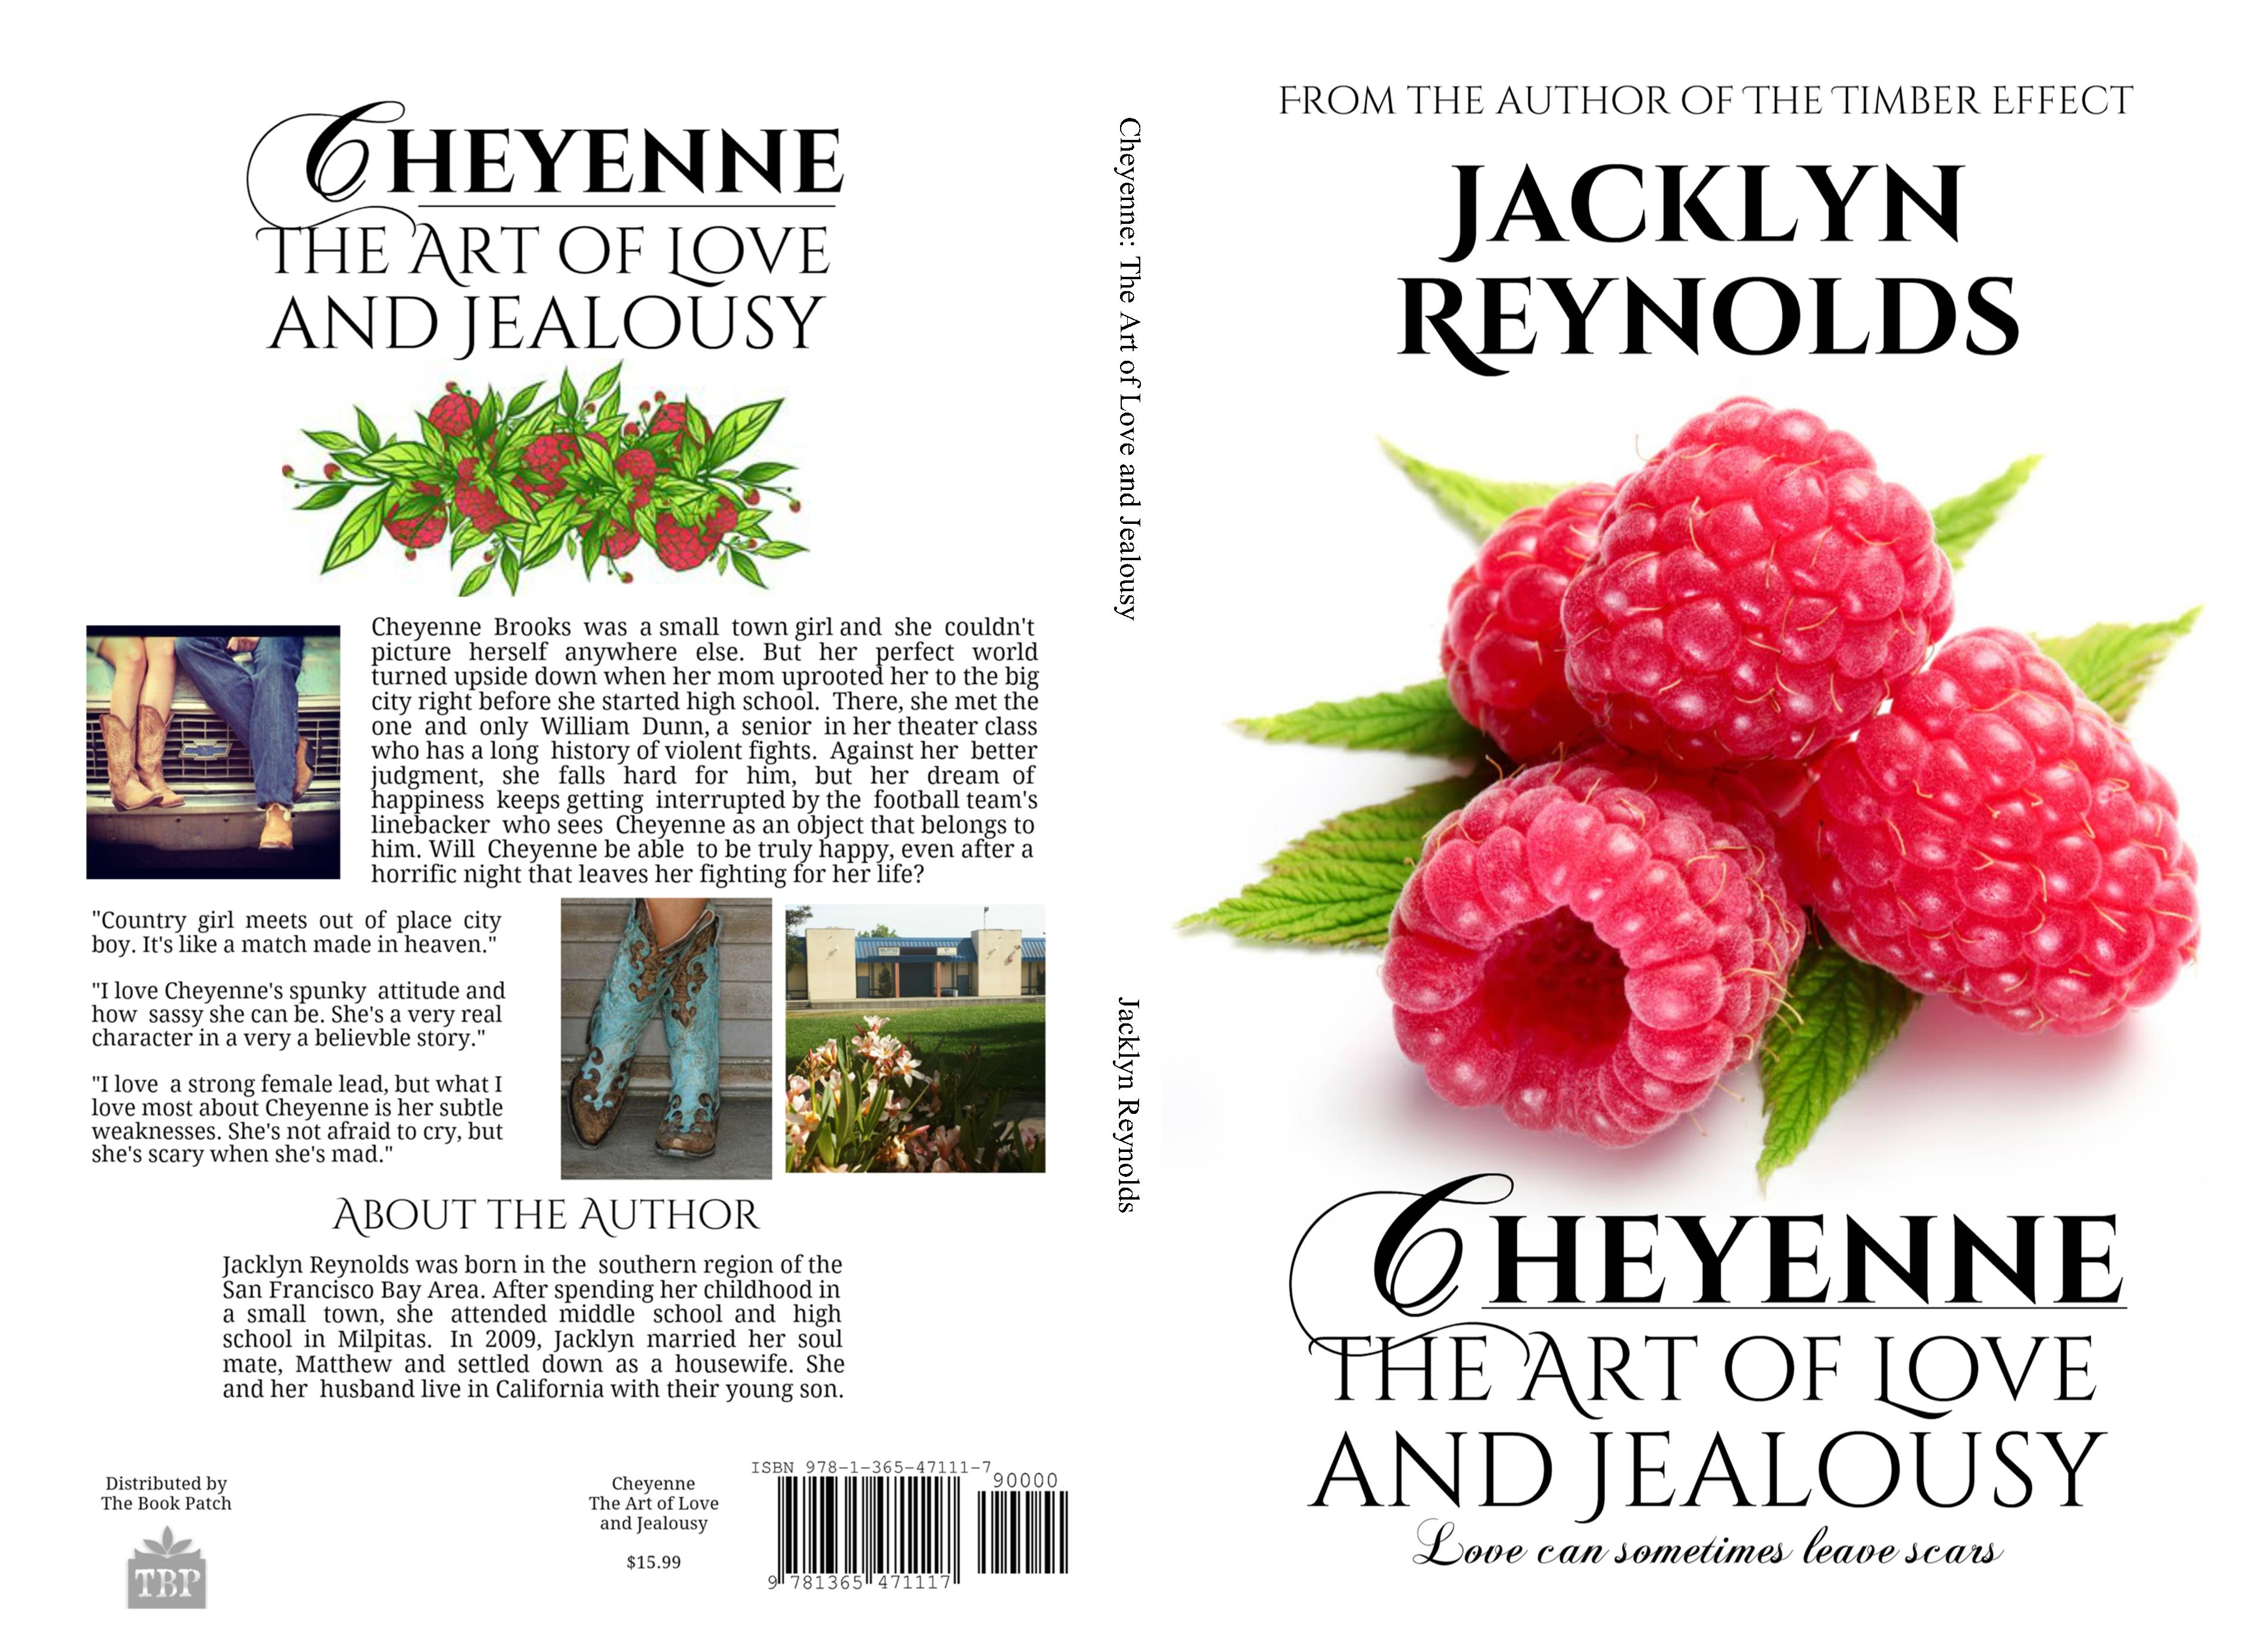 Cheyenne: The Art of Love and Jealousy cover image